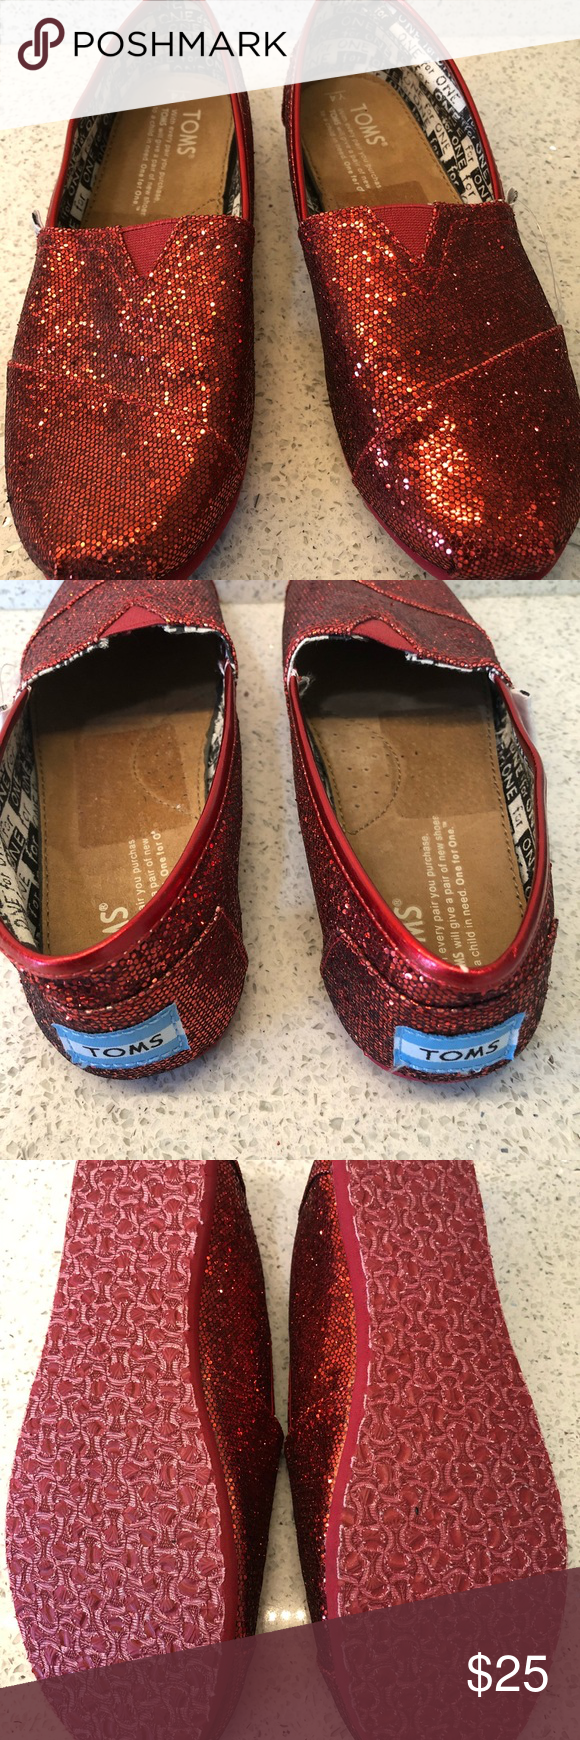 eb73b47273a Red Glitter Toms 4Y or 6W Toms slip on shoes. Red Glitter Red Sequins. New  with out tags. Comes from Smoke free Pet free home. Size is 4 Youth but  should ...